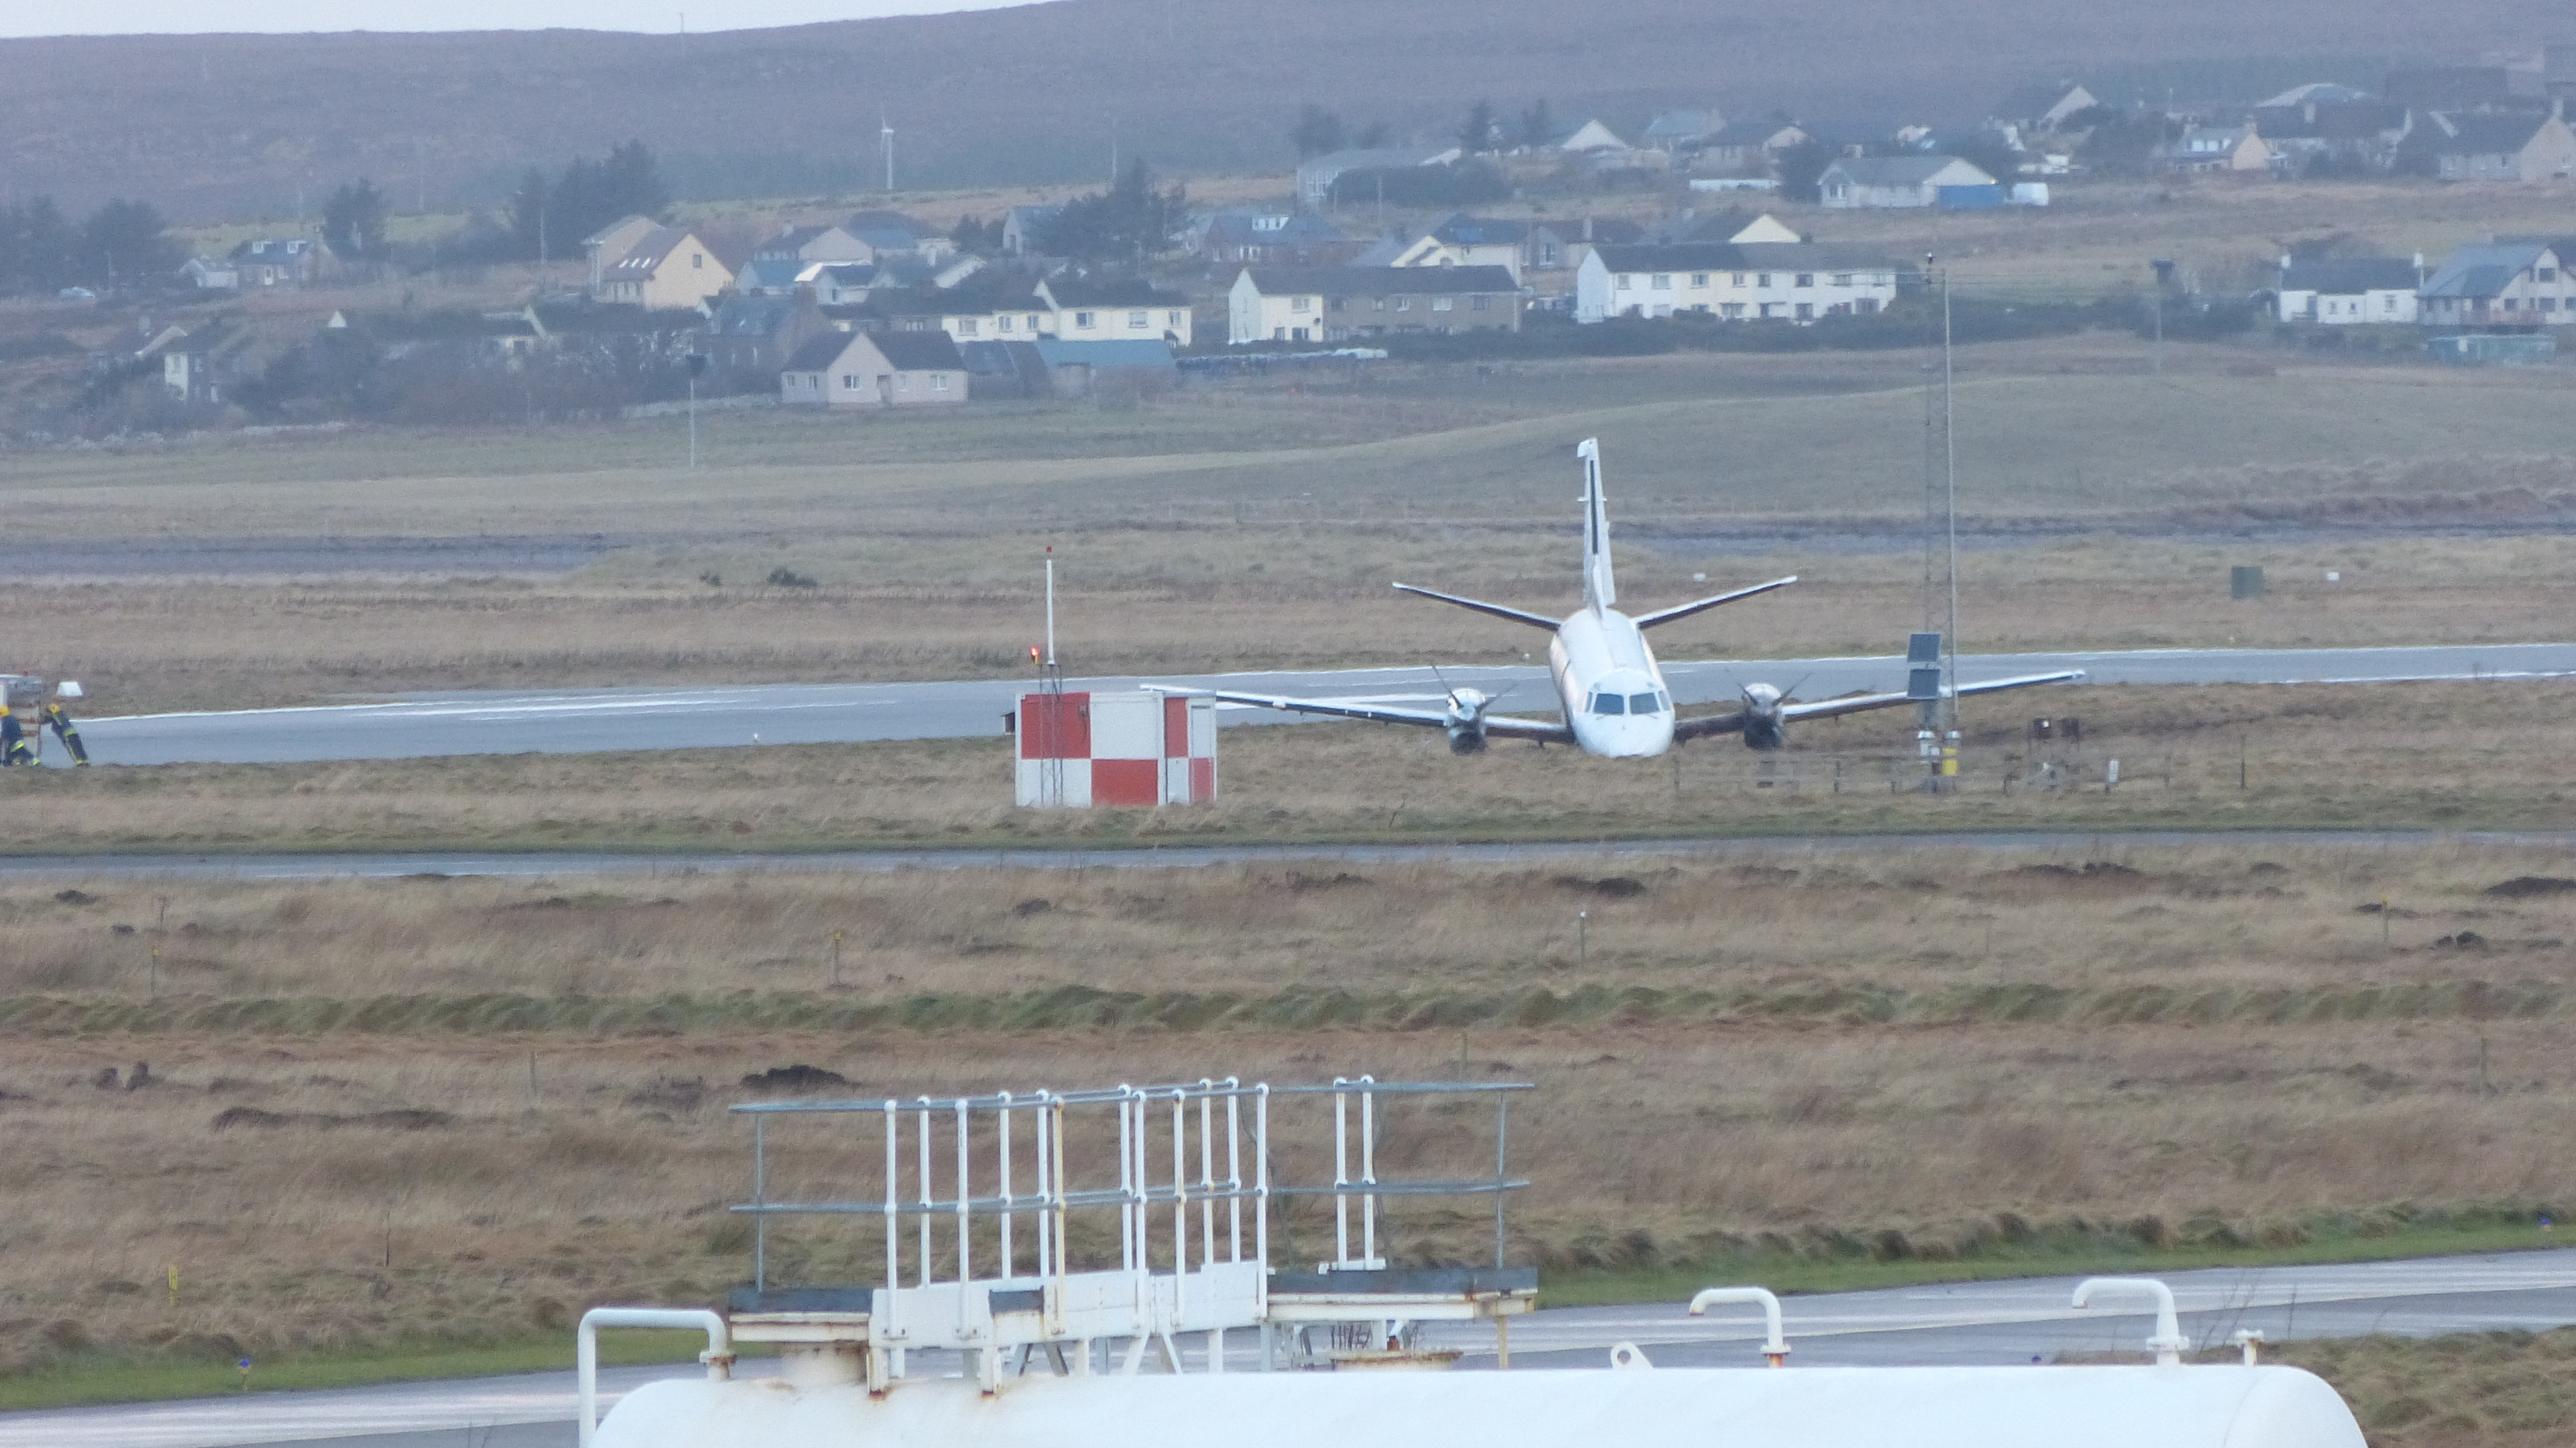 The plane which veered off the runway at Stornoway Airport